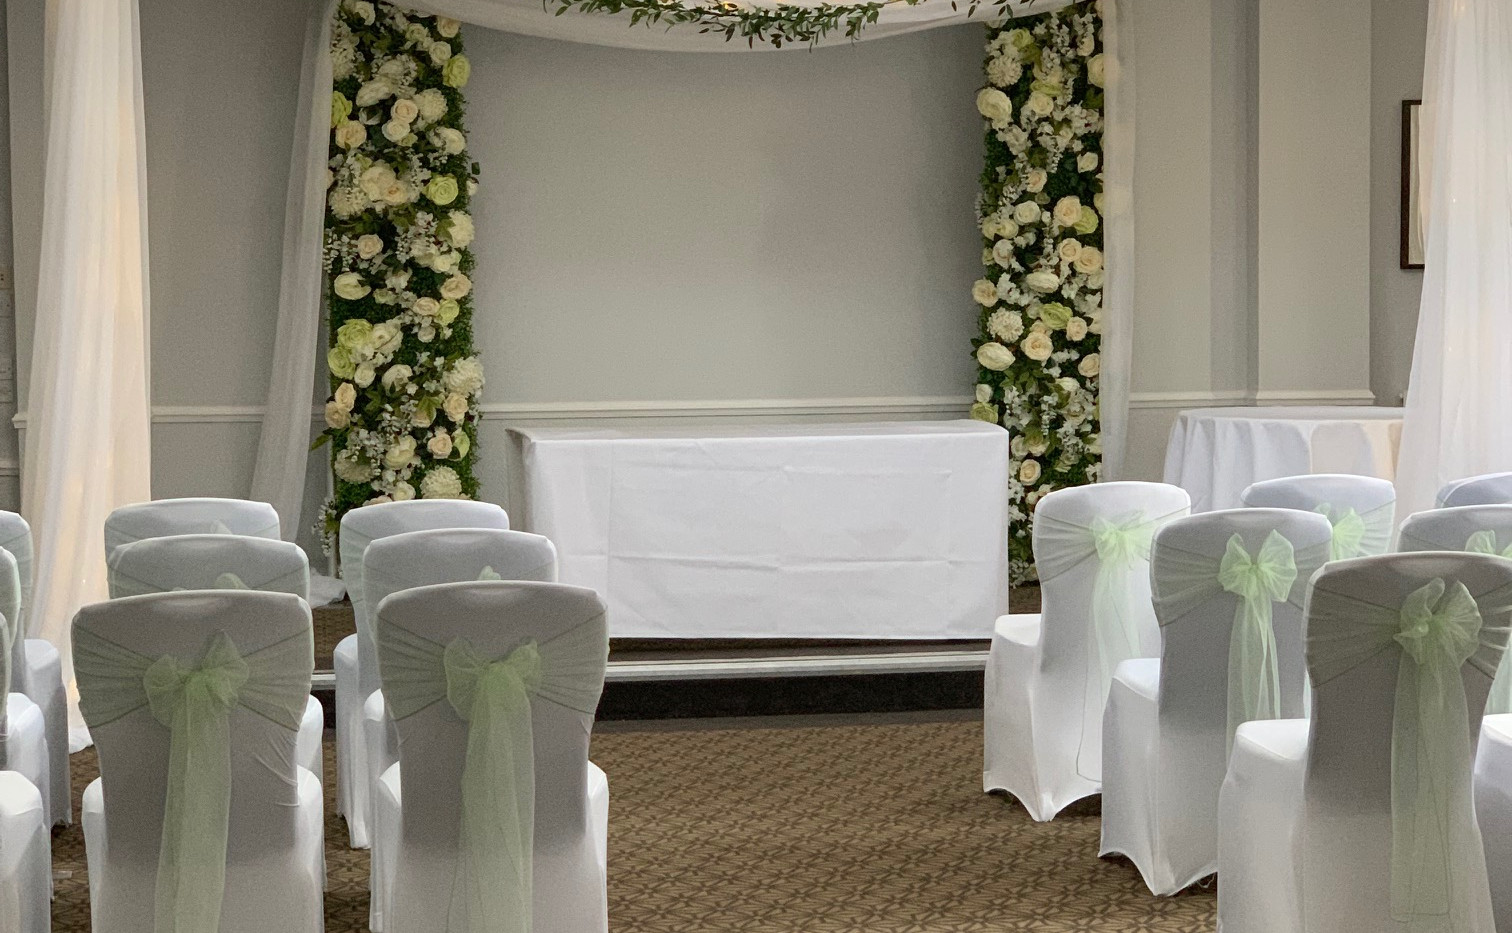 Create that perfect backdrop by adding our stage draping with our 10ft flower wall panel and draping archway.  £250 for both  Ceiling garland not included.